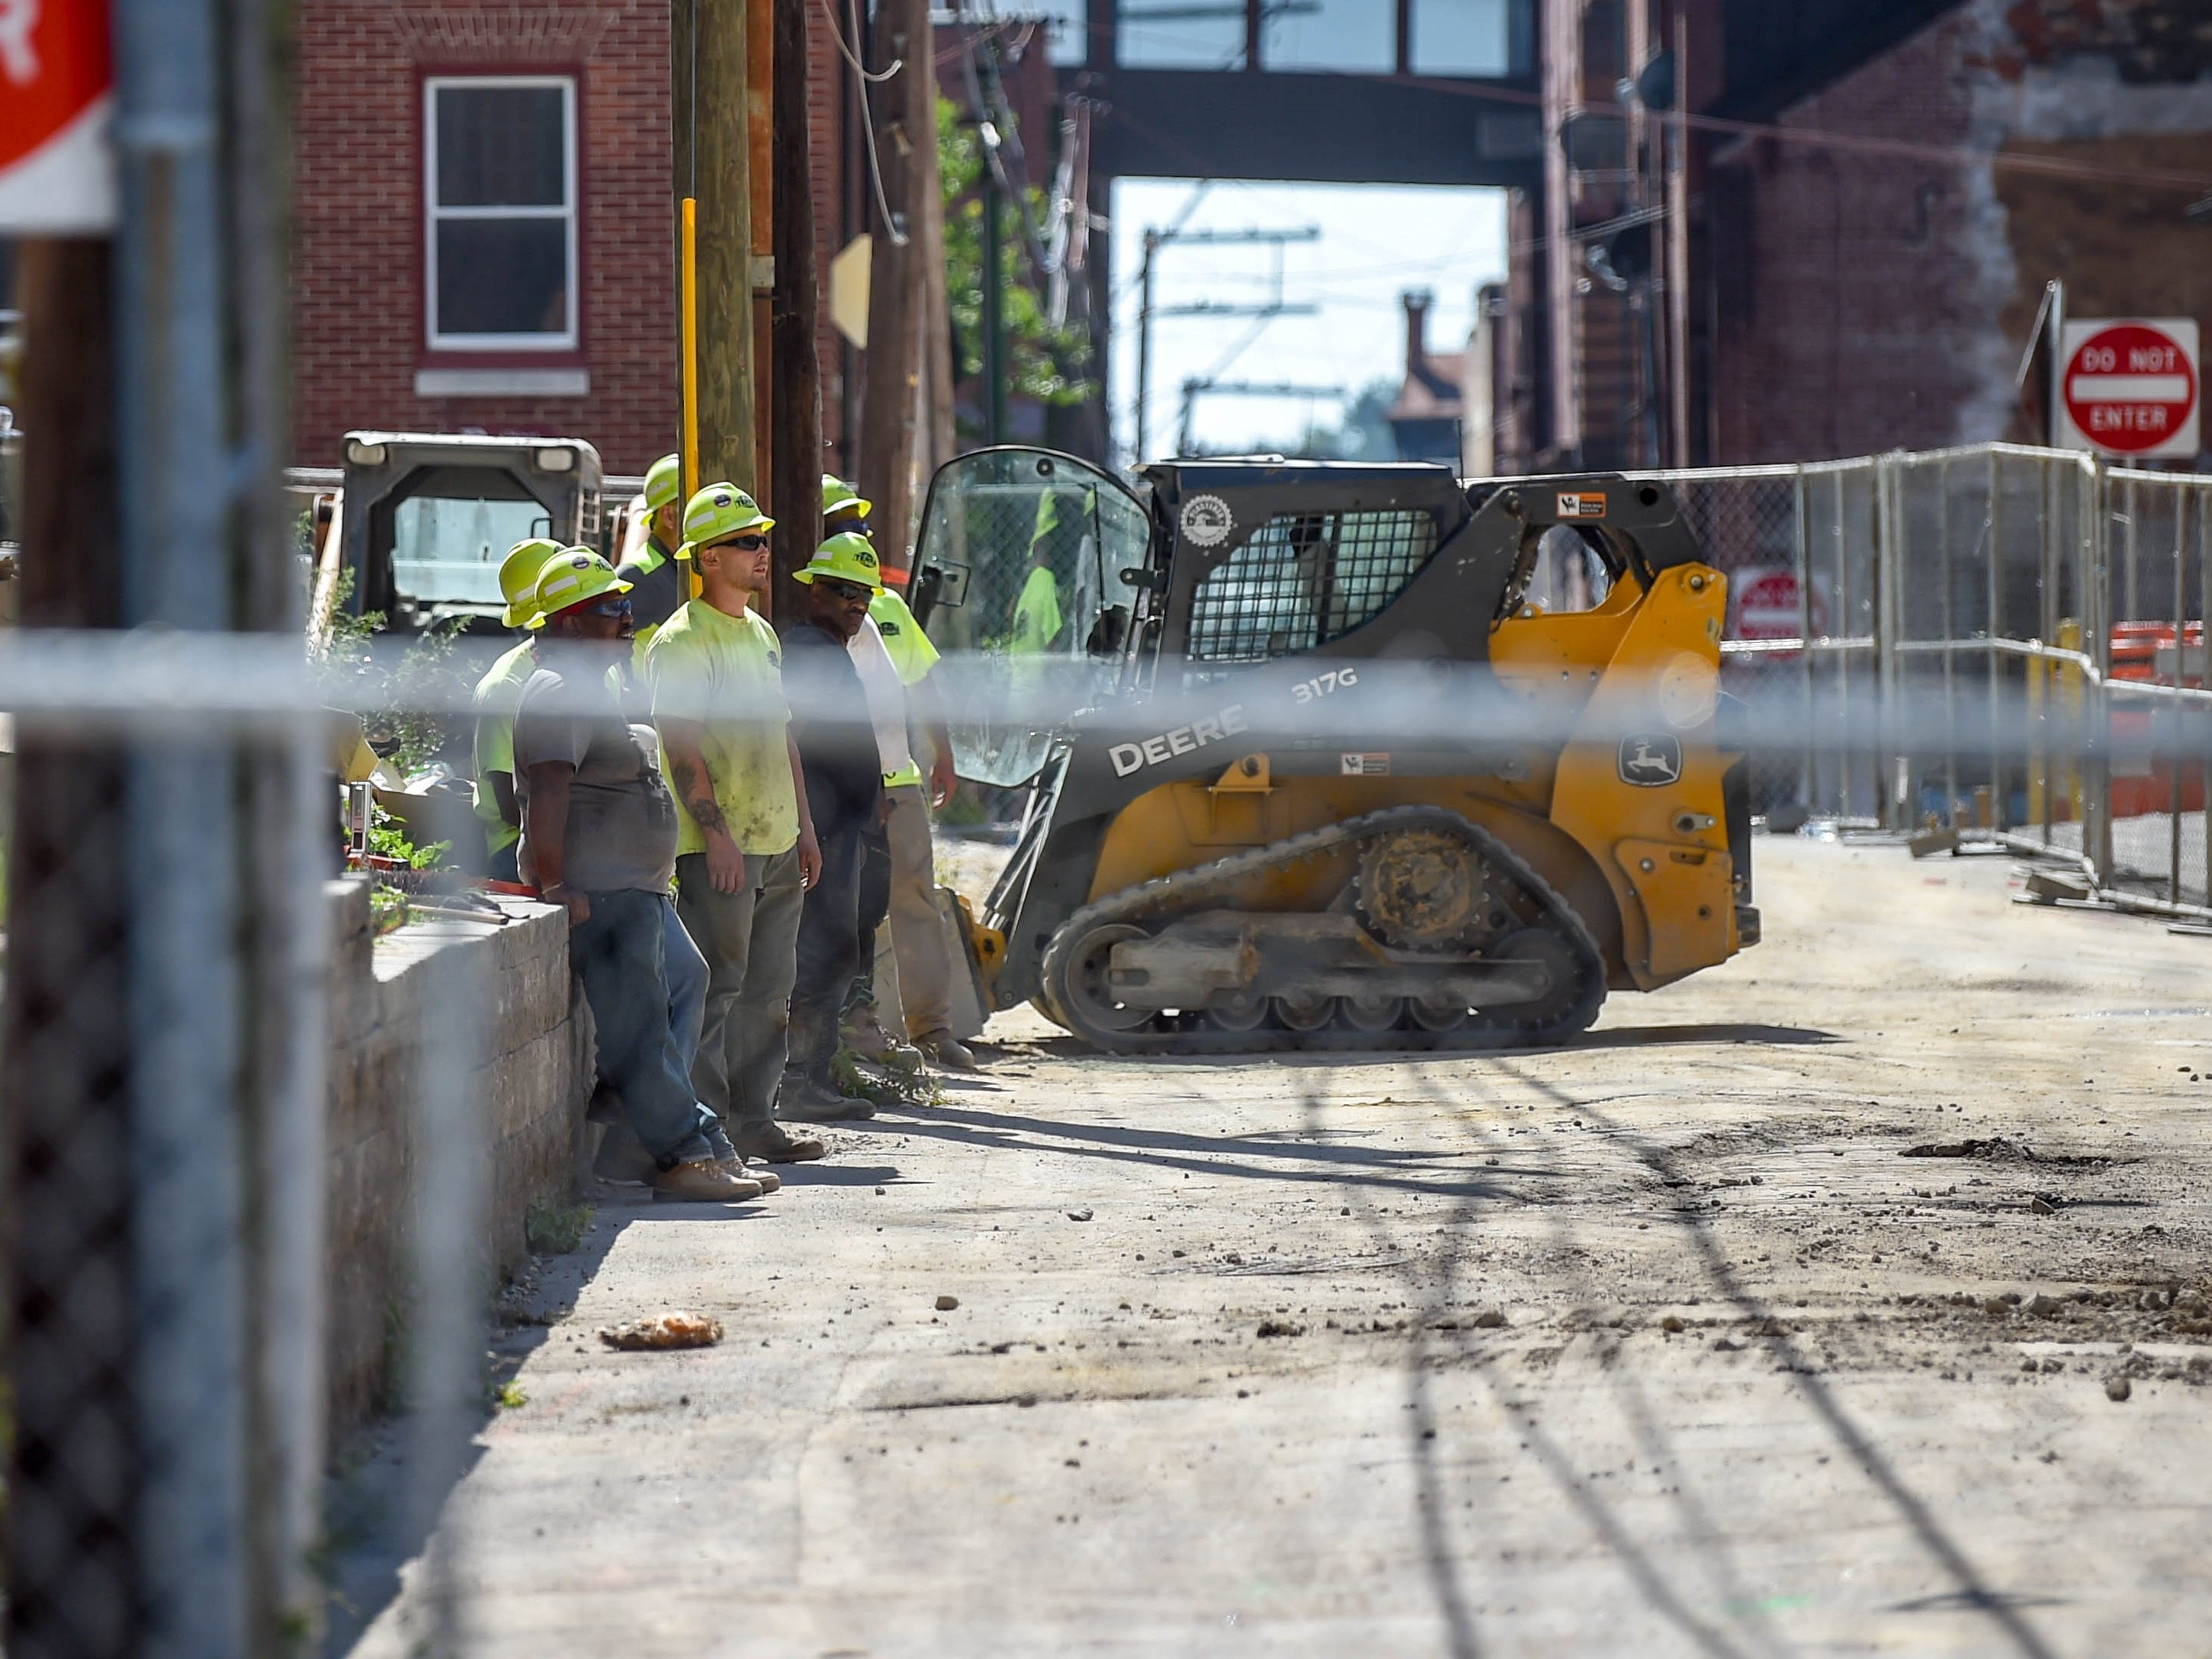 Construction workers watch as the trackhoe lifts debris out of the way at the Yorktowne Hotel on October 4, 2018.